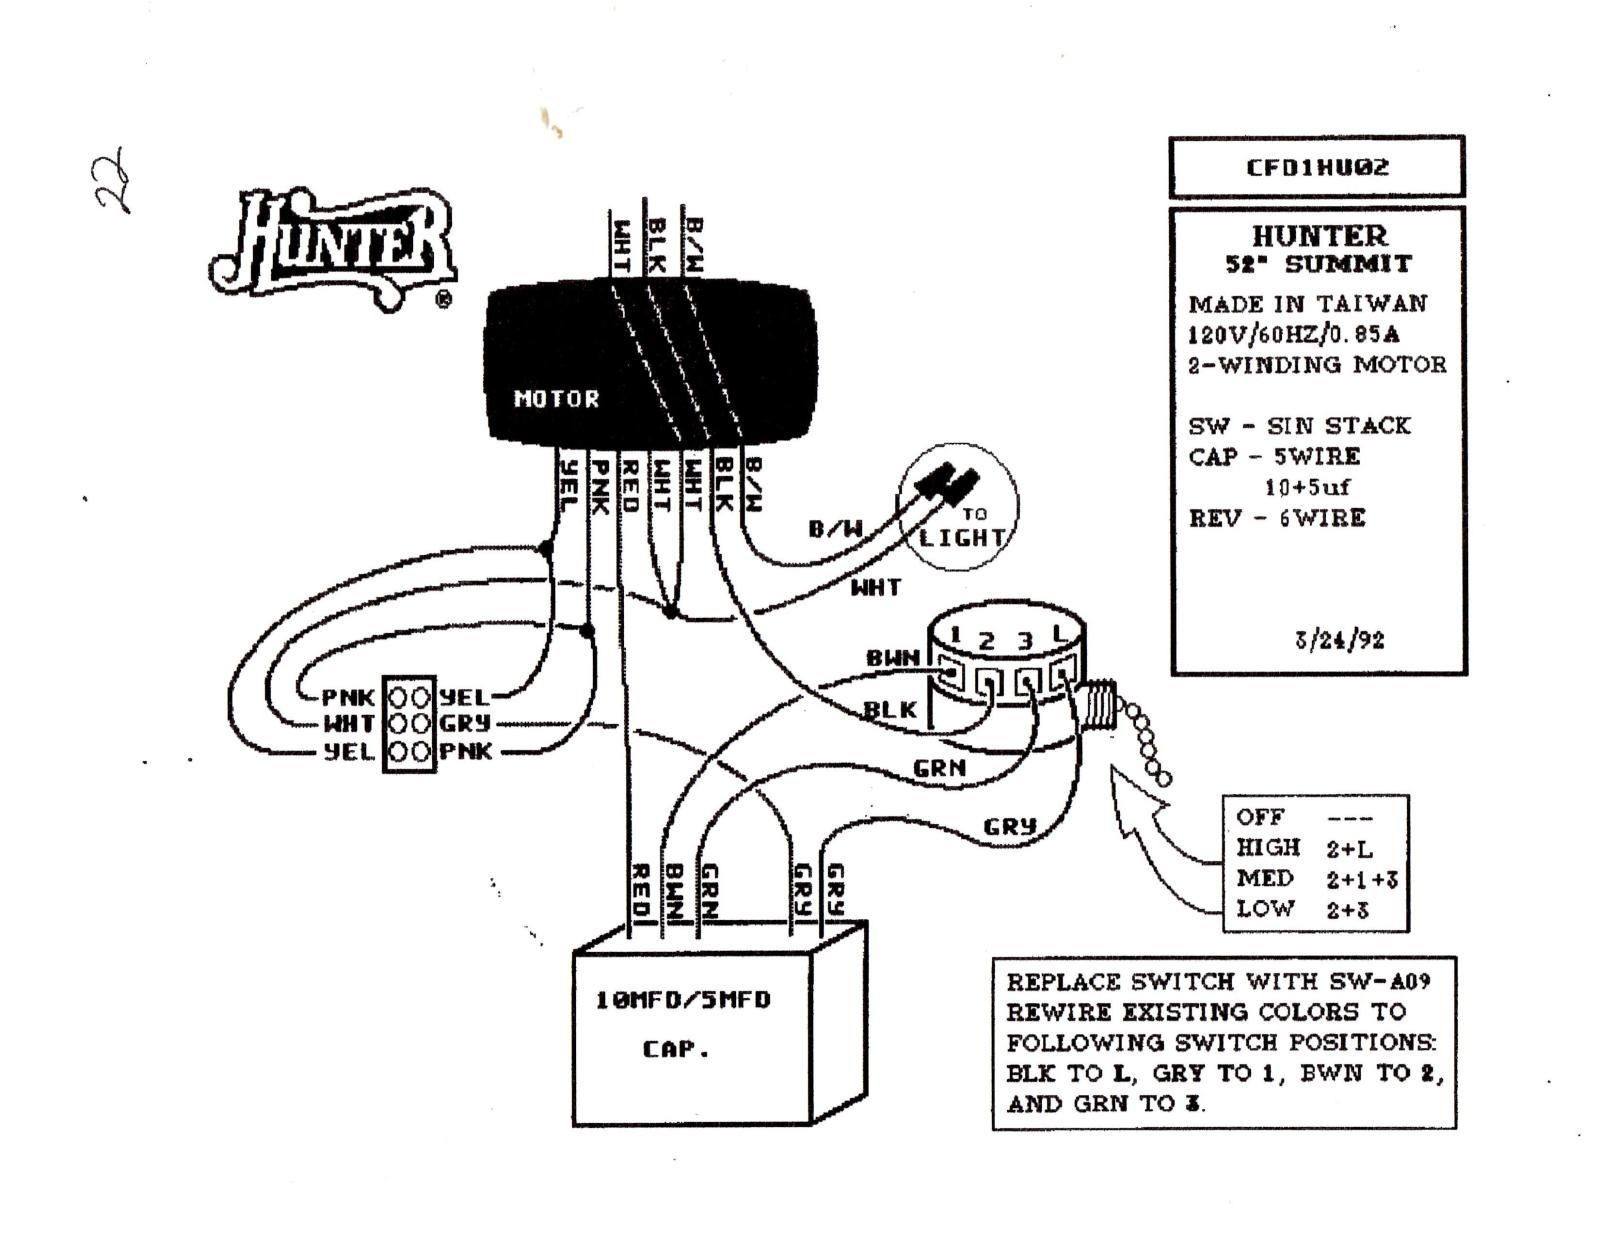 hunter ceiling fan capacitor wiring diagram Collection-Wiring Diagram for Ceiling Fan Speed Switch New Wiring Diagram for Ceiling Fan Switch New Hunter 16-k